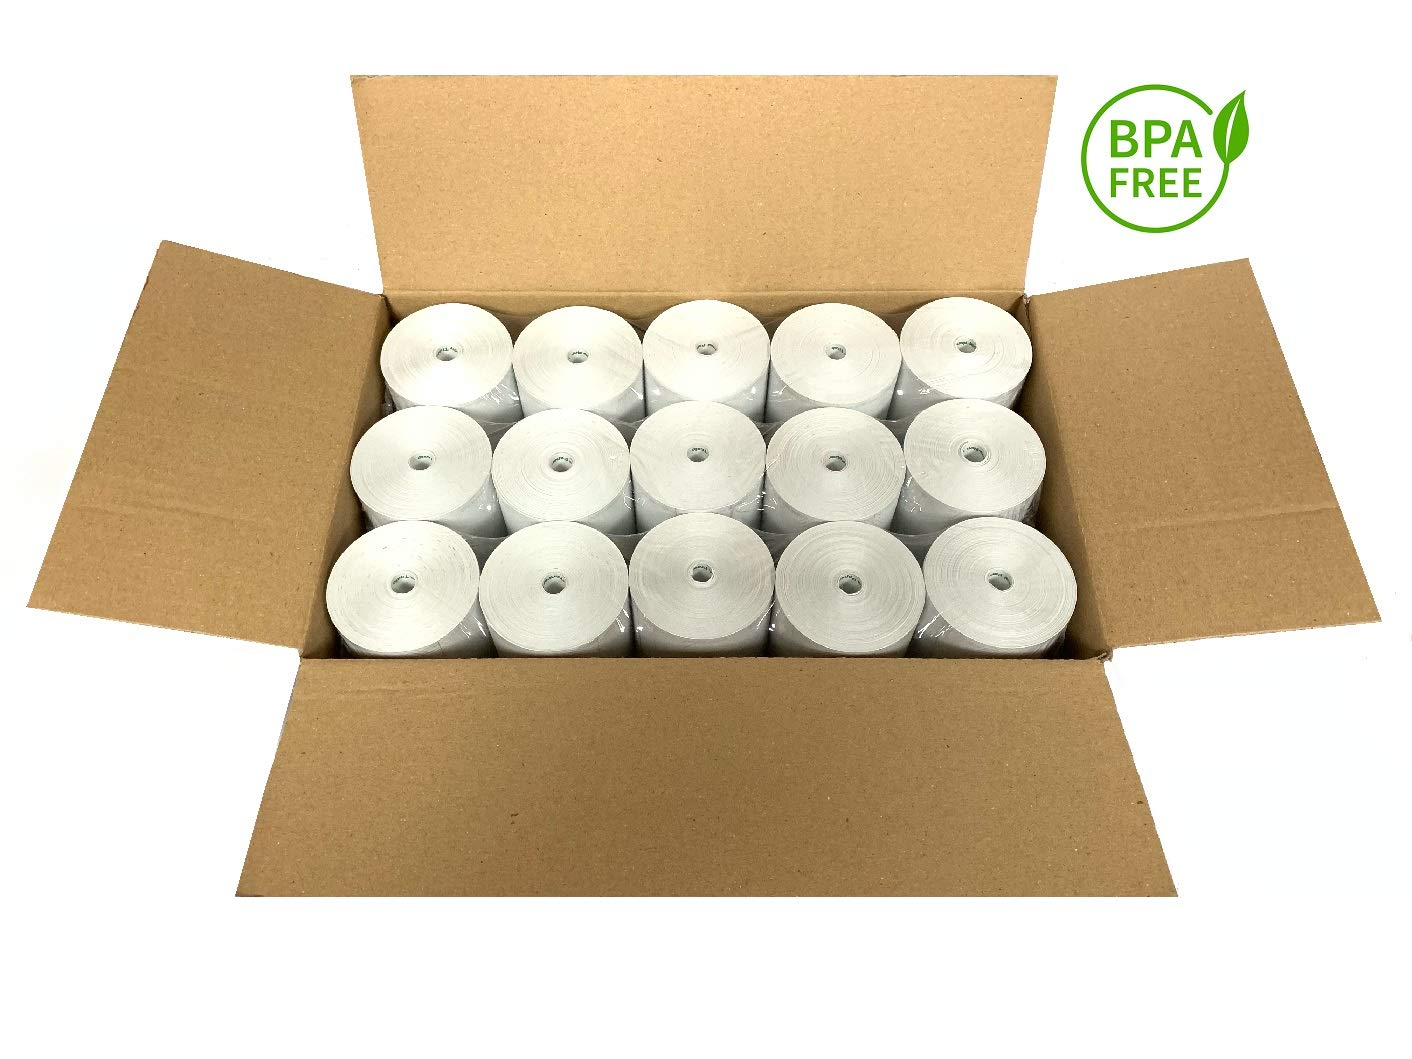 BAM POS Thermal Paper Rolls 3 1/8 x 190 Eco Lite Pack (30 Rolls) by BAM POS